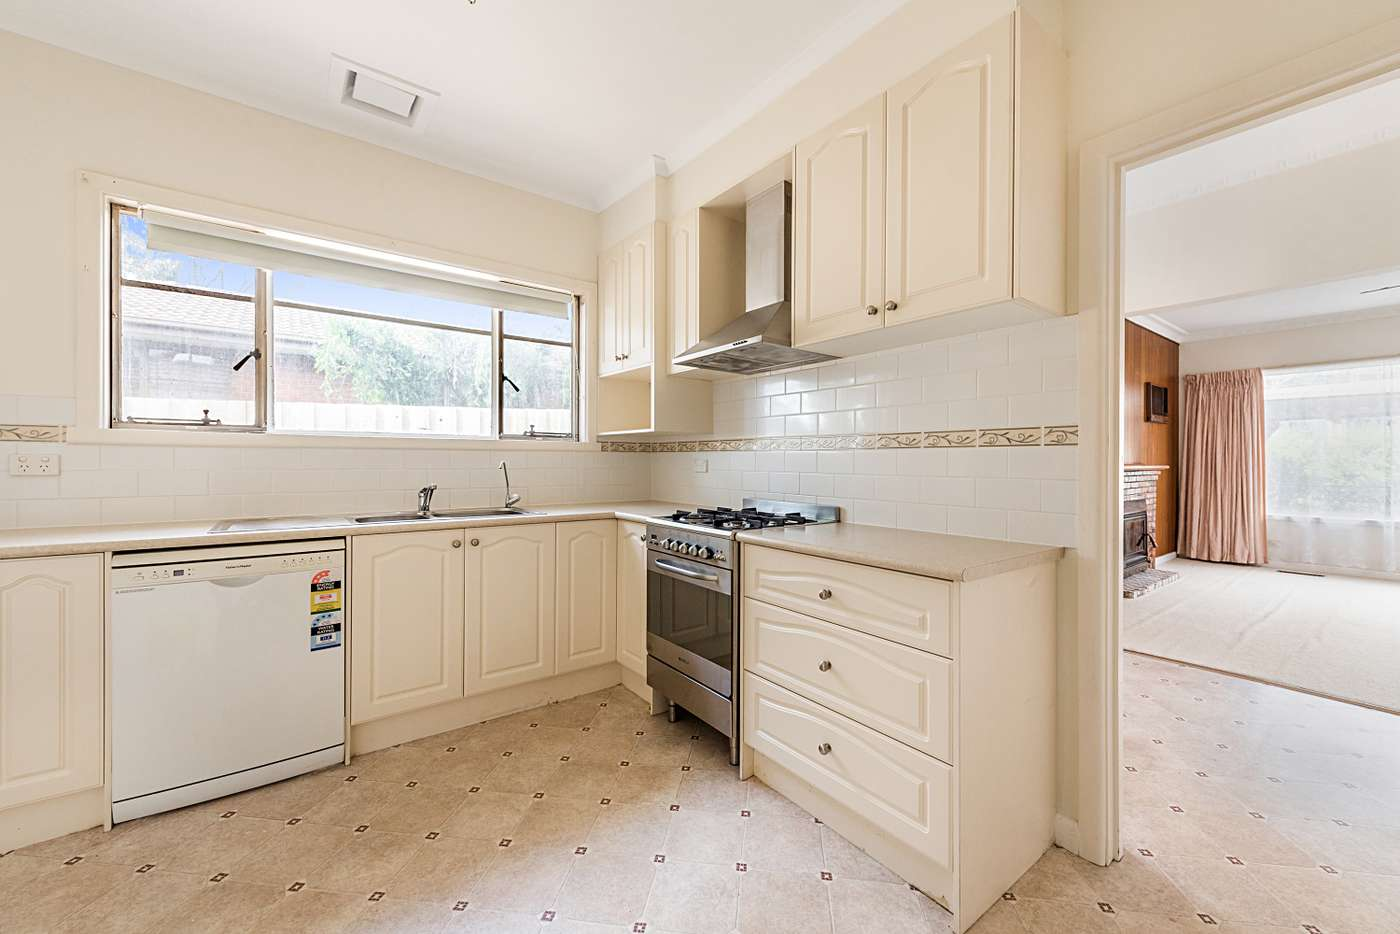 Main view of Homely house listing, 1/367 Canterbury Road, Forest Hill VIC 3131